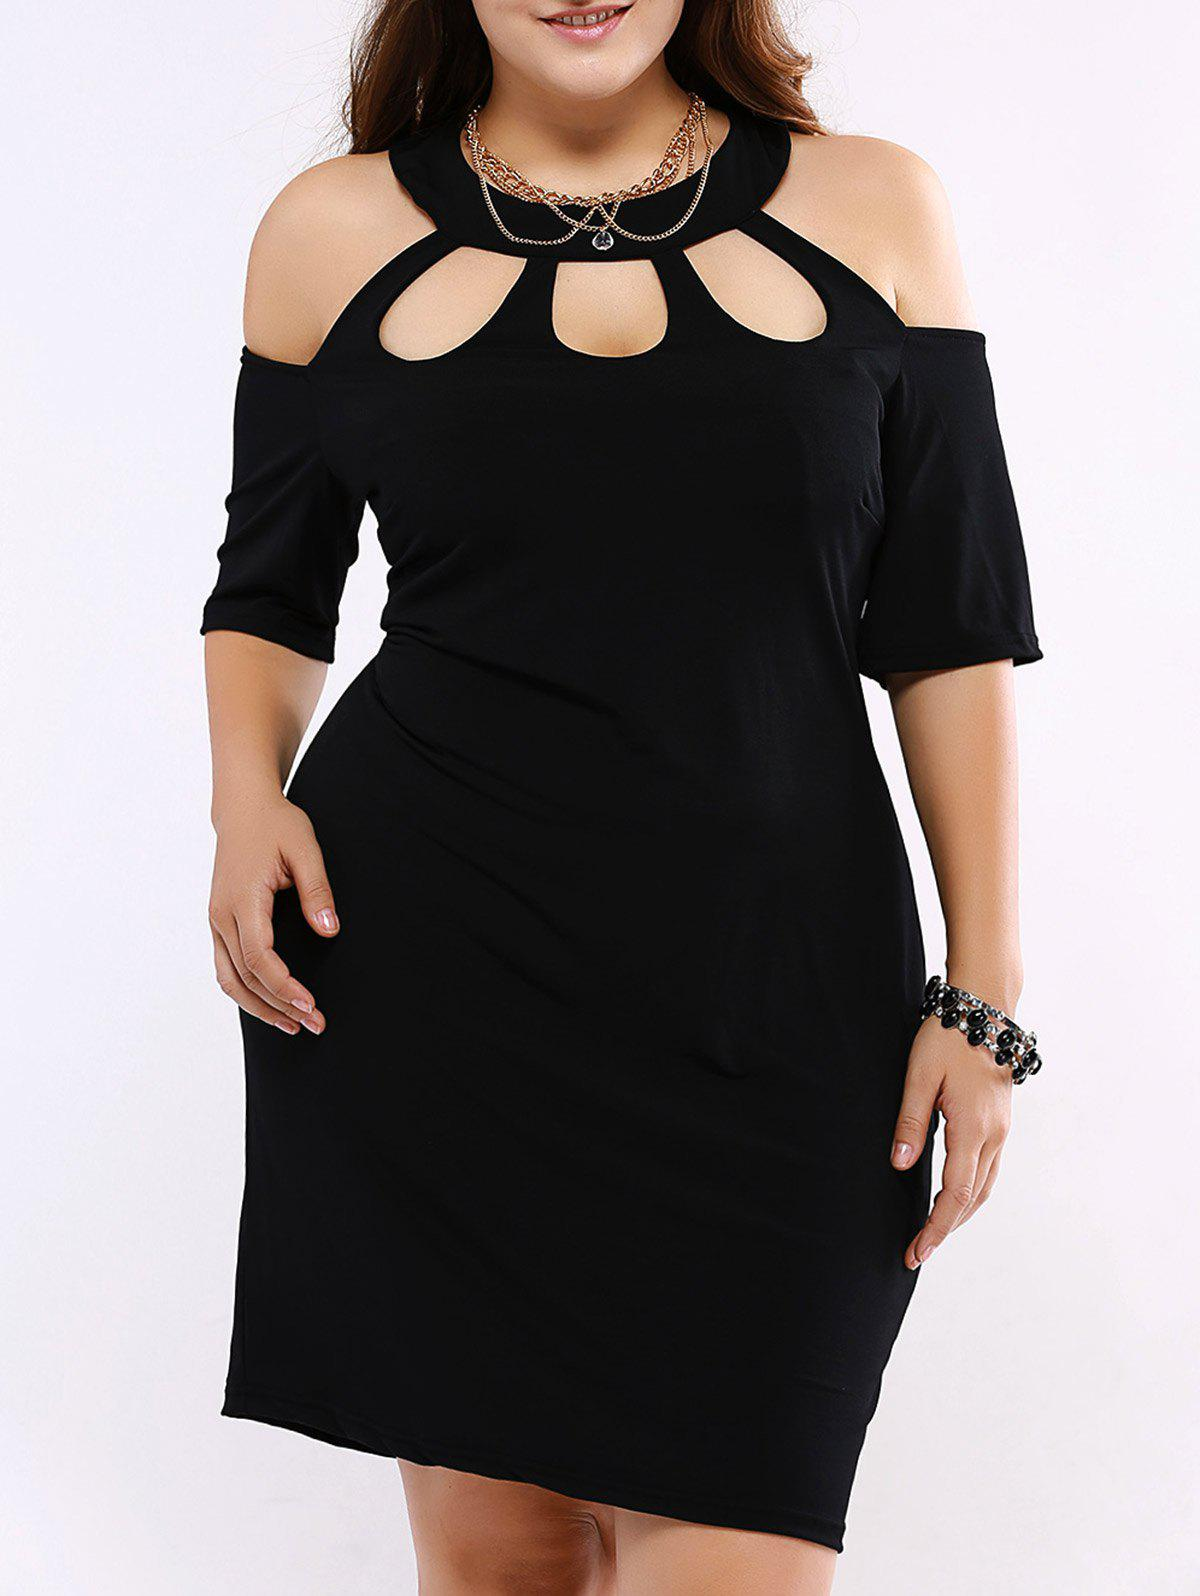 Plus Size Alluring Cut Out Black Dress - BLACK 5XL